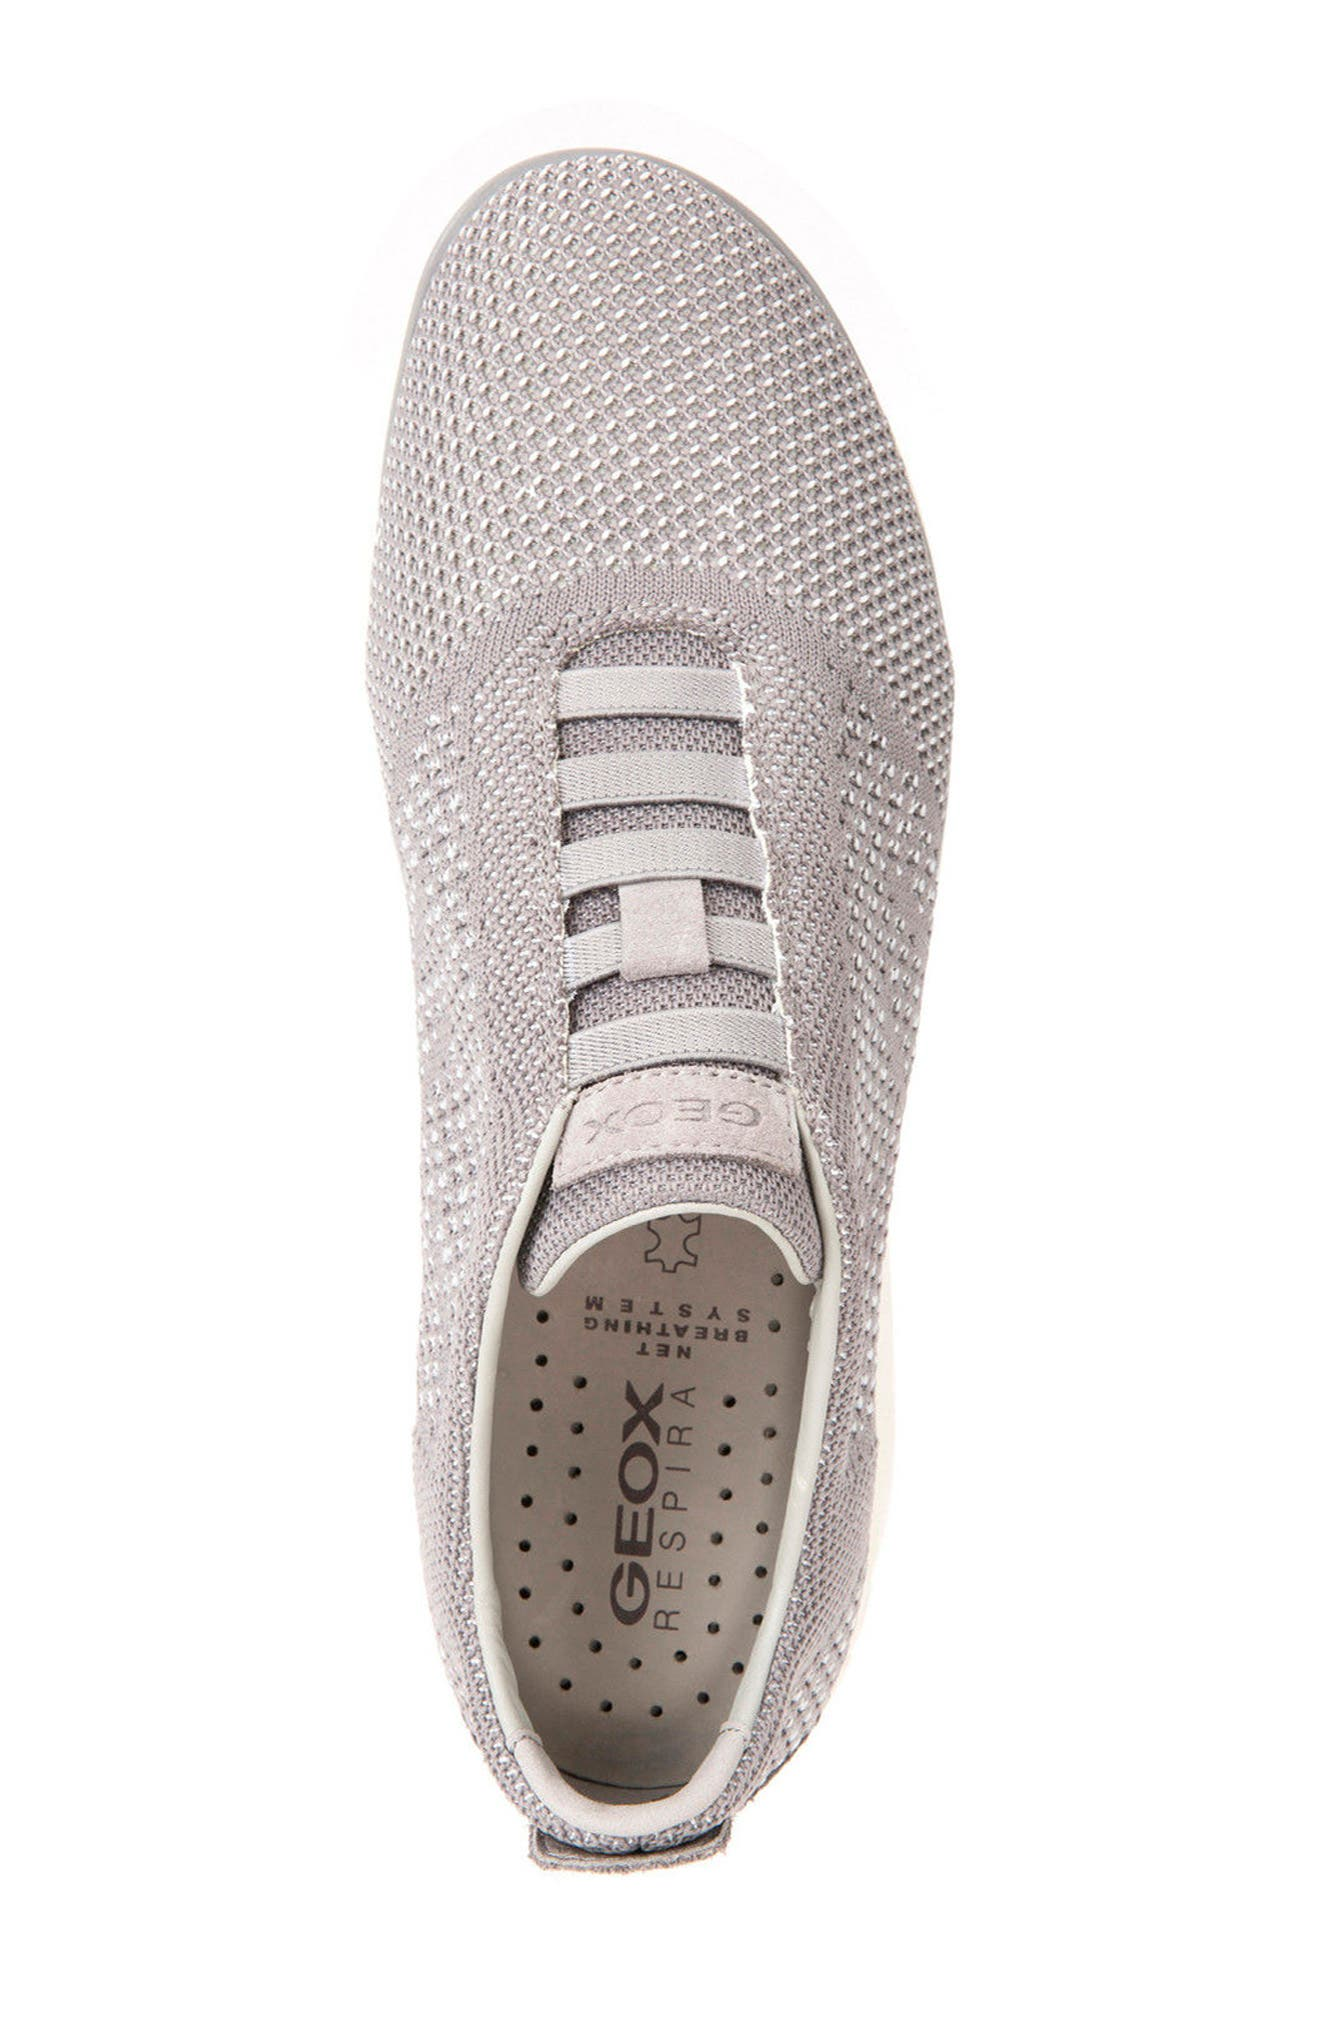 Nebula 42 Laceless Knit Sneaker,                             Alternate thumbnail 5, color,                             STONE/ WHITE